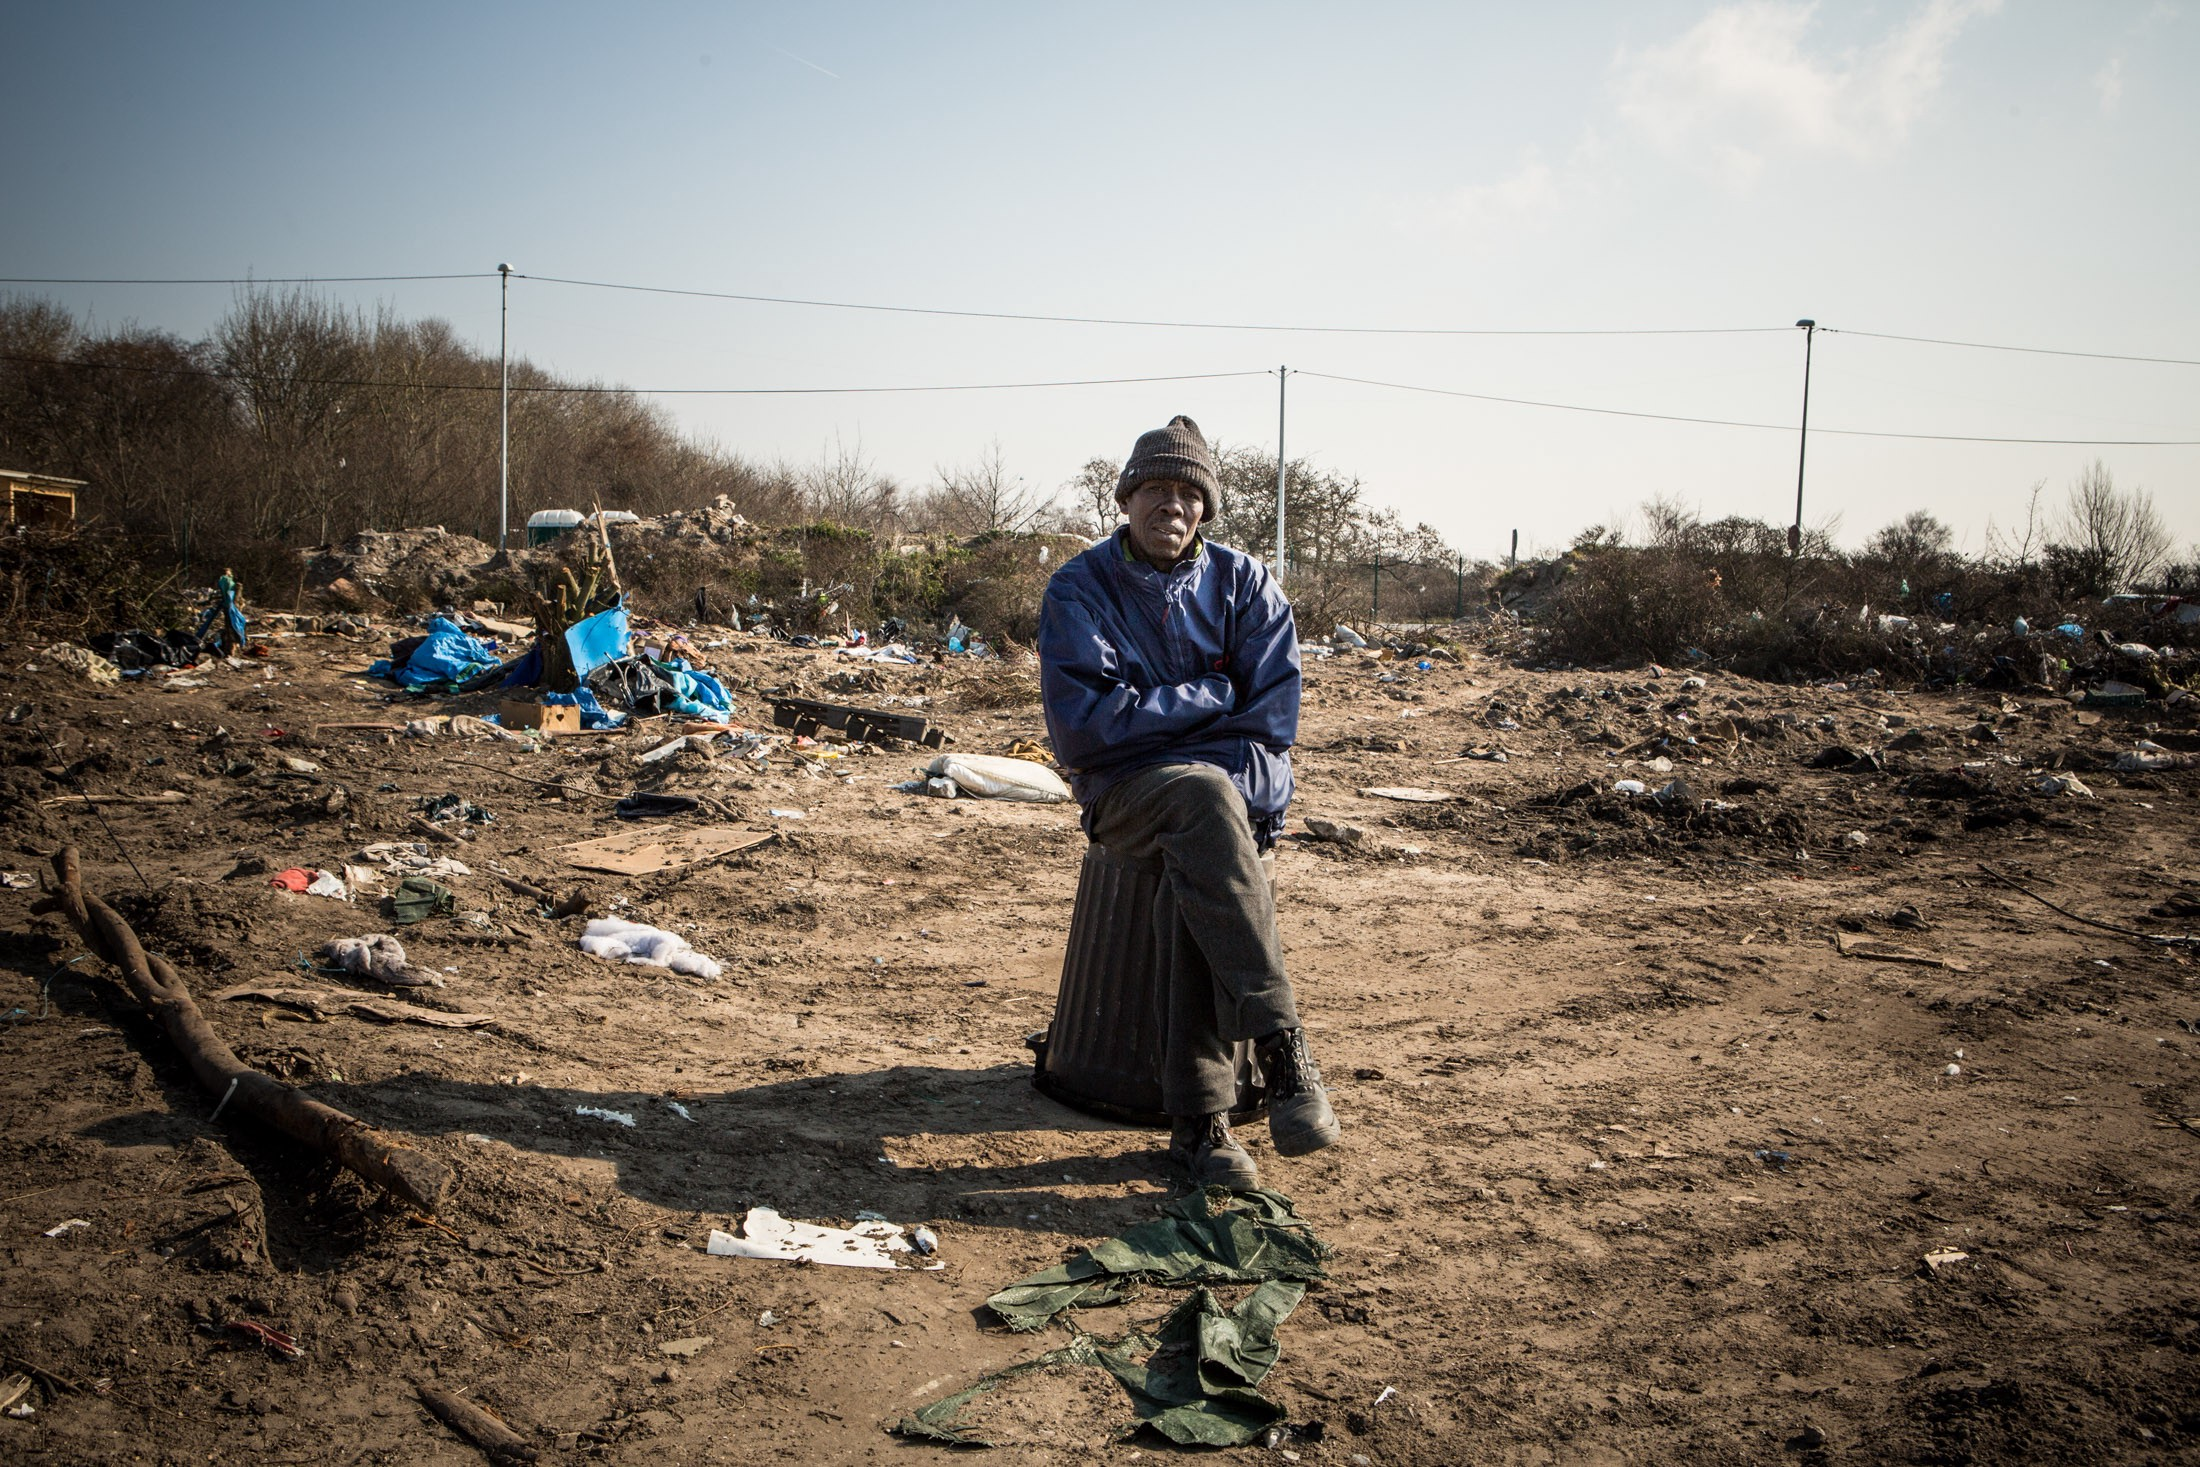 Abo Alraiga at the point in the Jungle where his house was located before authorities demolished the southern half of the encampment on the outskirts of Calais, violently displacing thousands of refugees in the process.